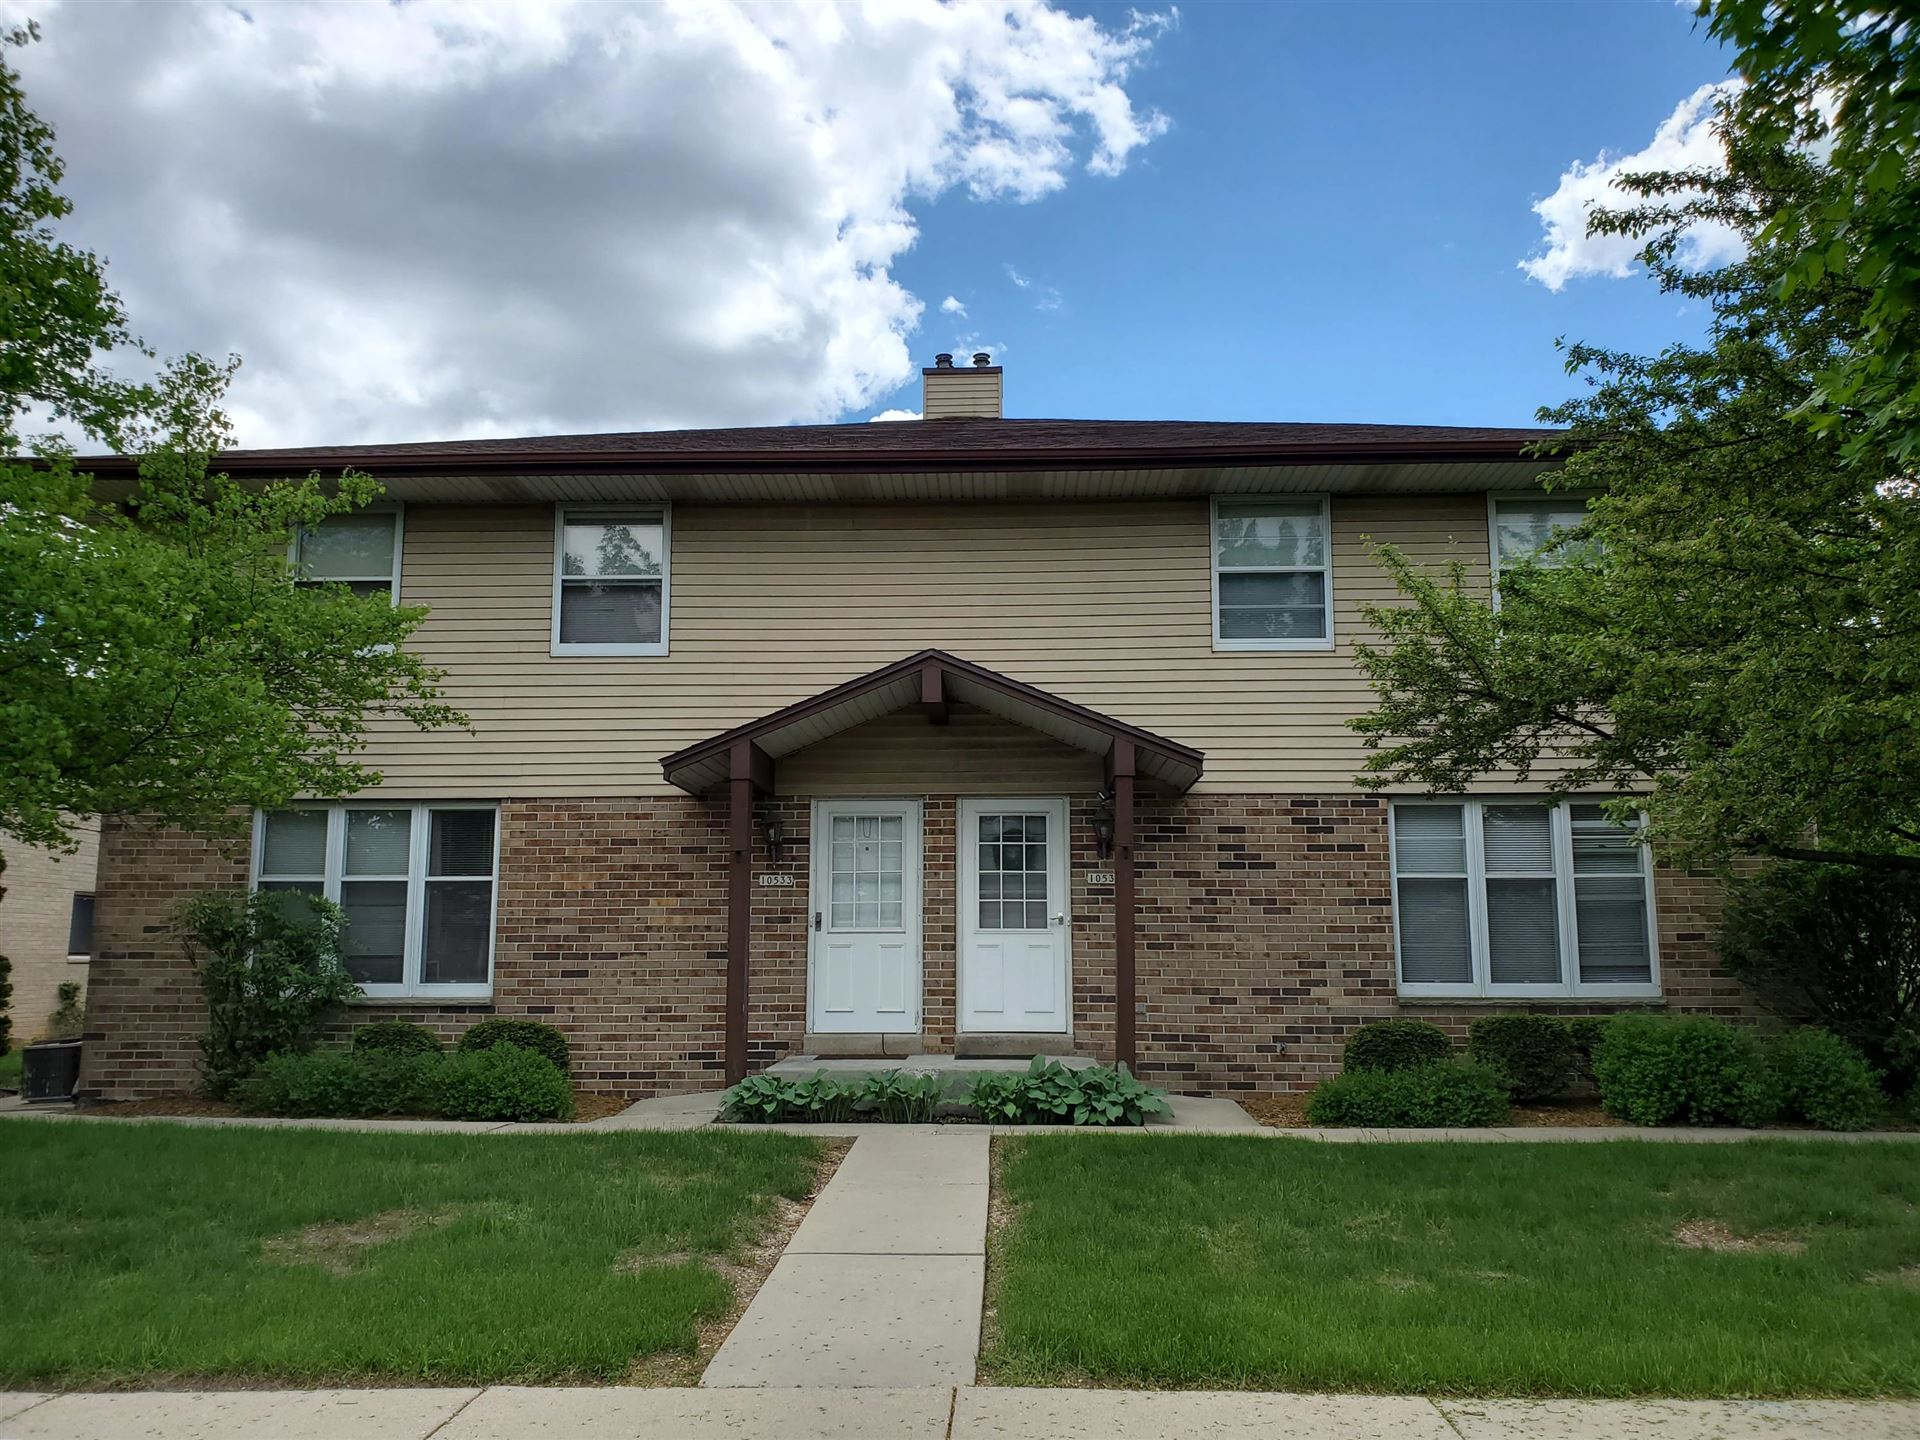 10533 W Hampton Ave #10535, Milwaukee, WI 53225 - #: 1695407